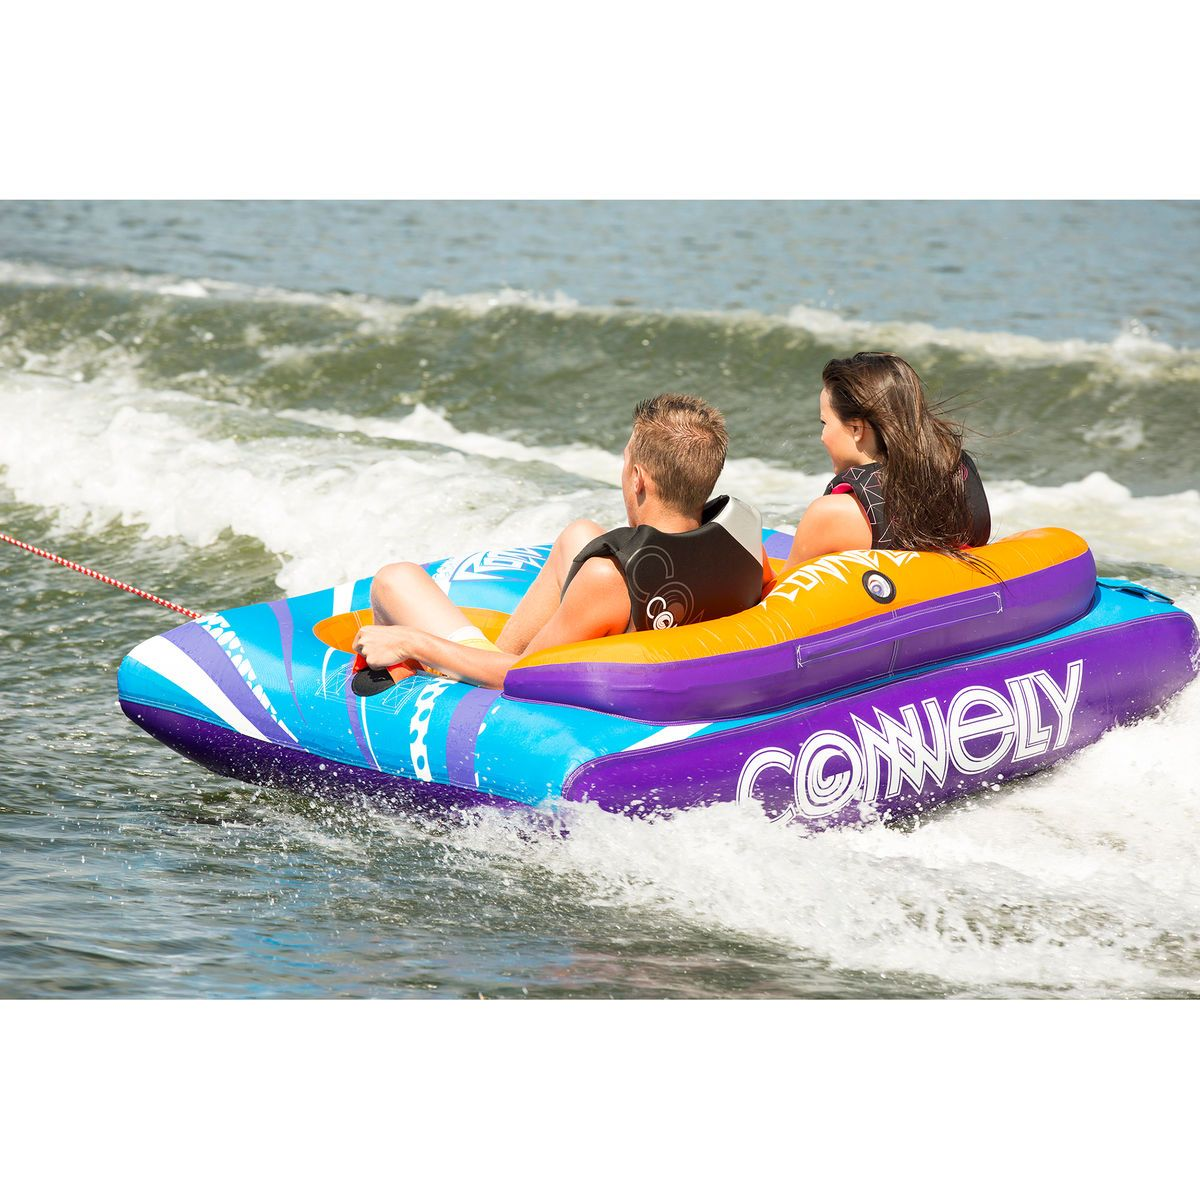 Connelly 2Rider Rocker 2 Towable Tube Overton's